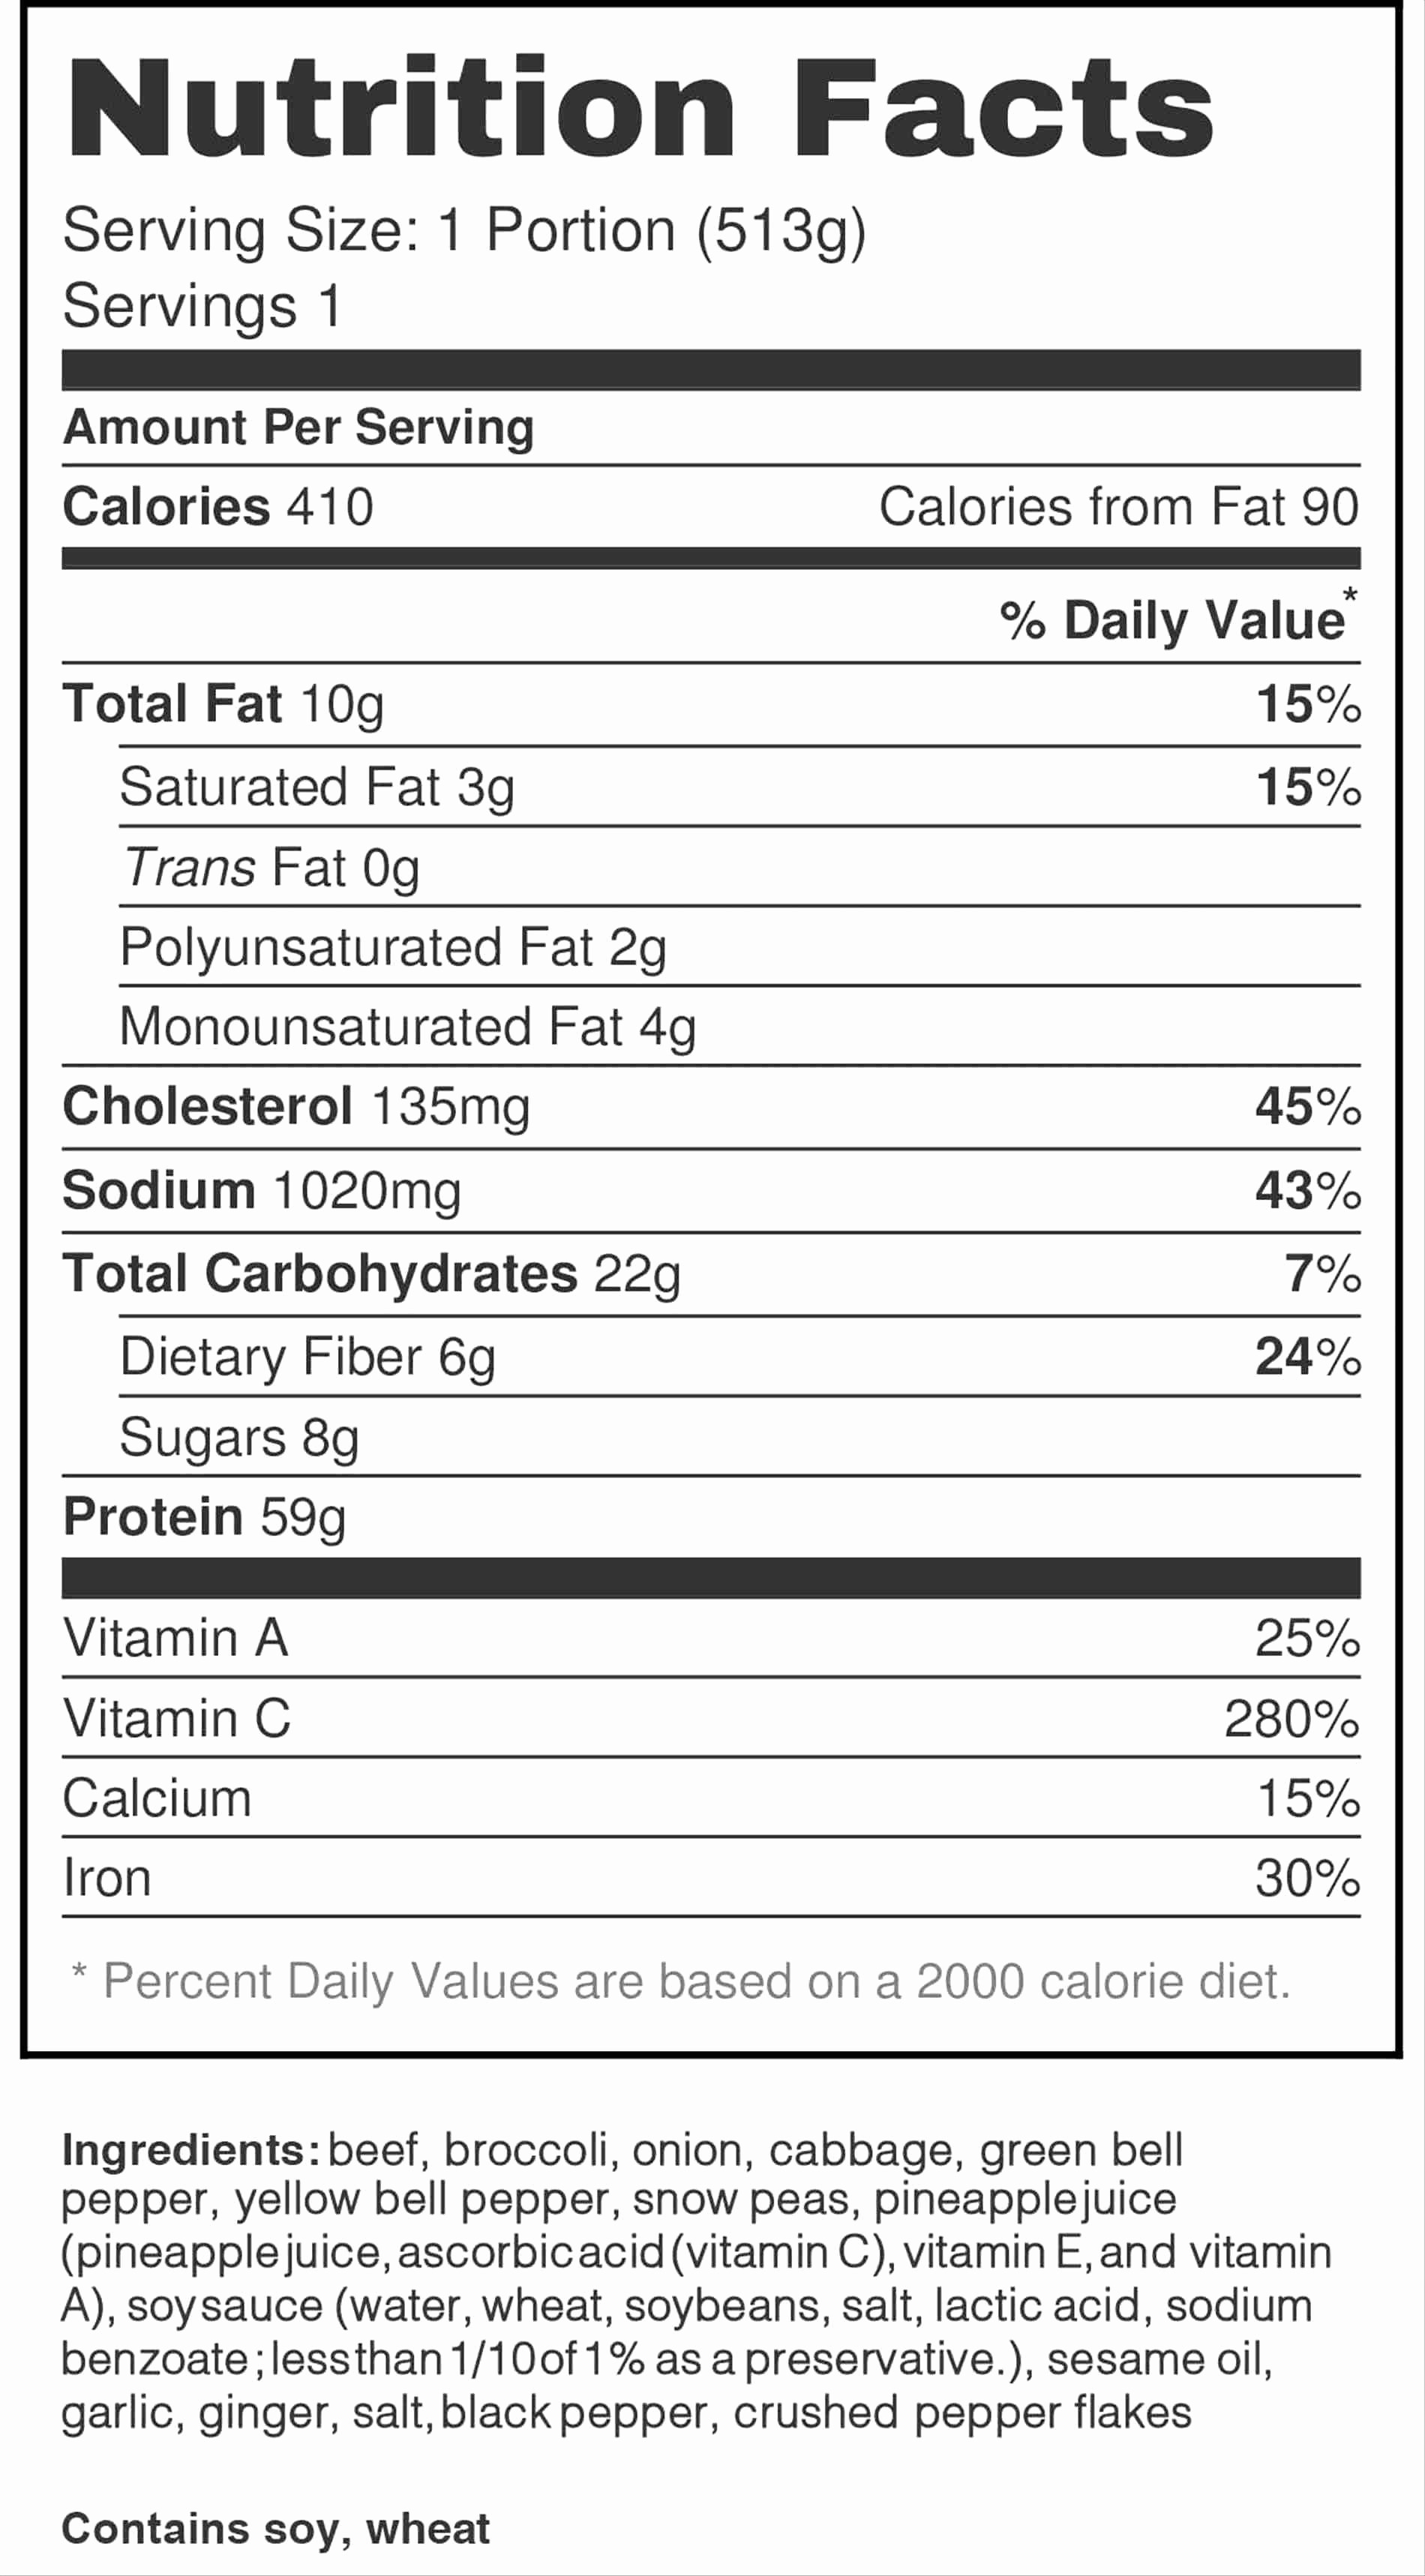 Nutrition Facts Template Excel Download Fresh Blank Nutrition Label Template Excel Nutrition Ftempo